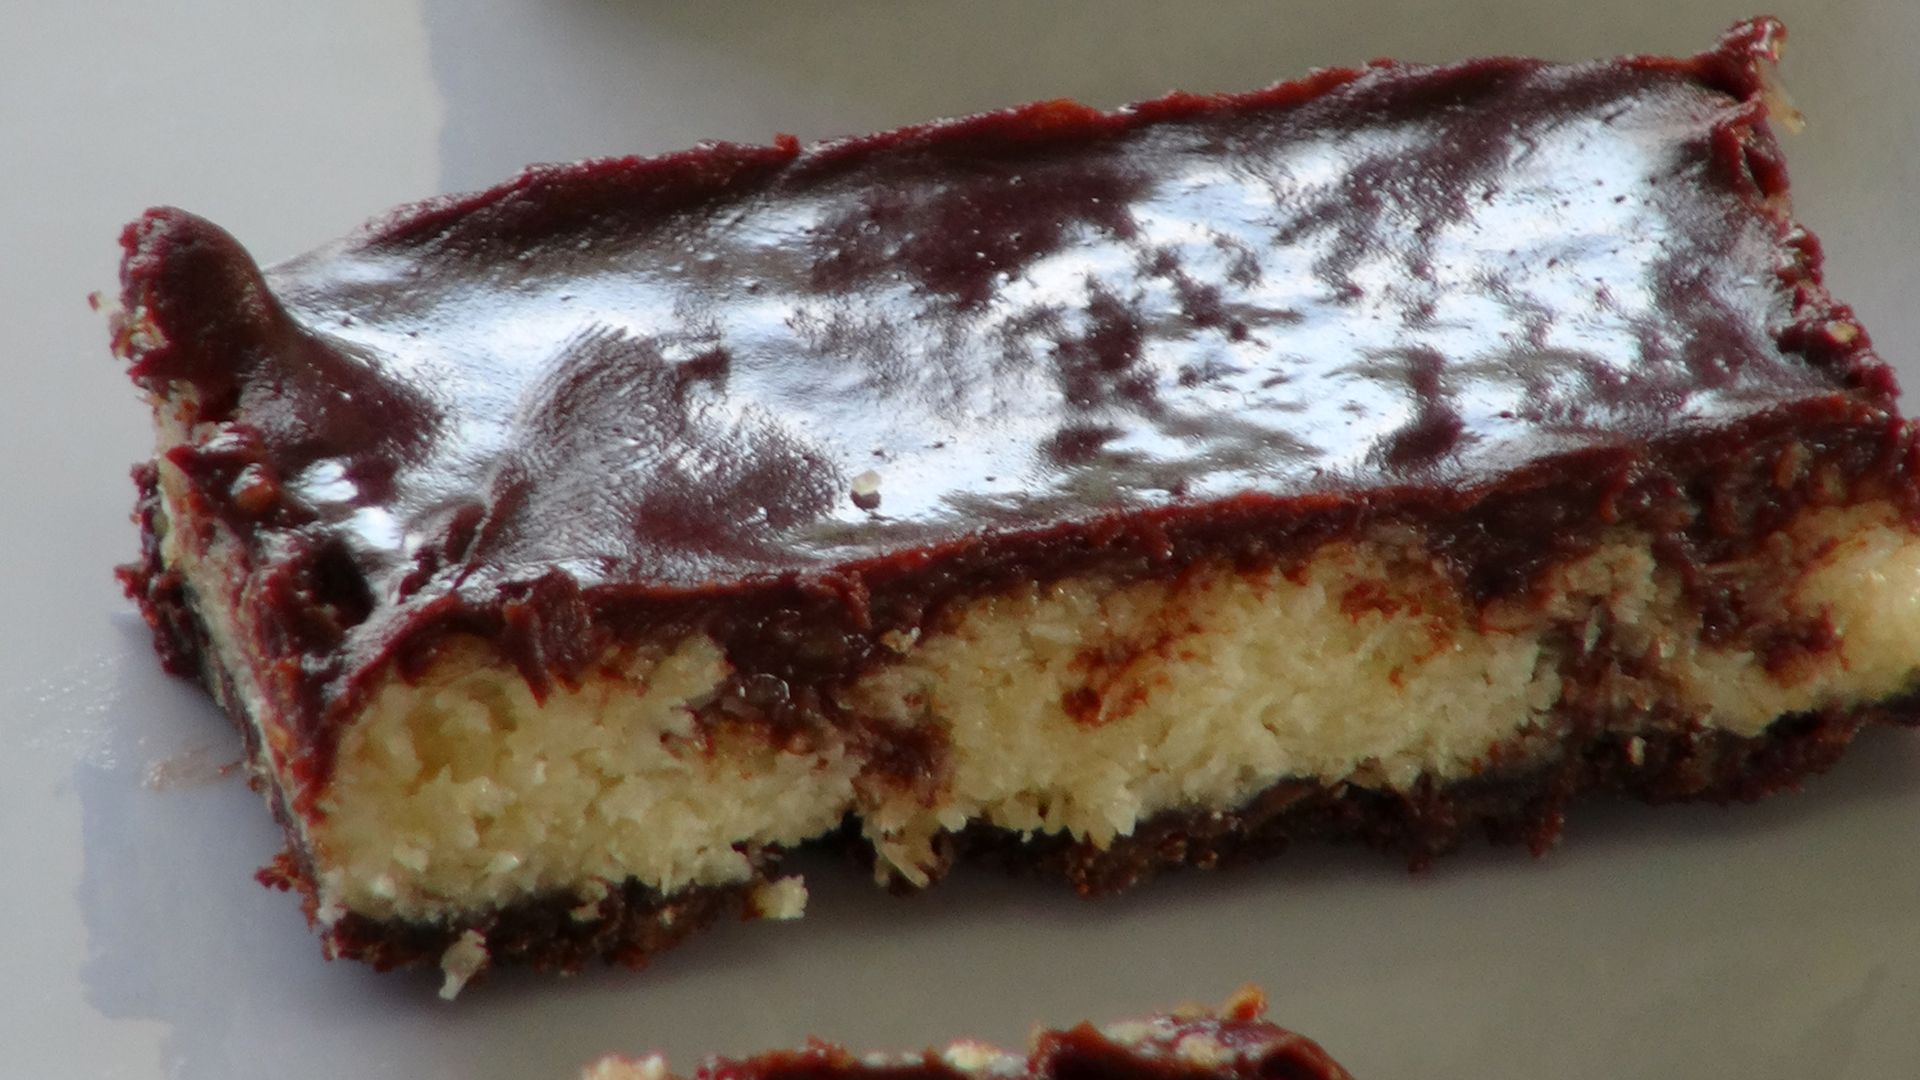 Chocolate Coconut Bars - The Frugal ChefThe Frugal Chef